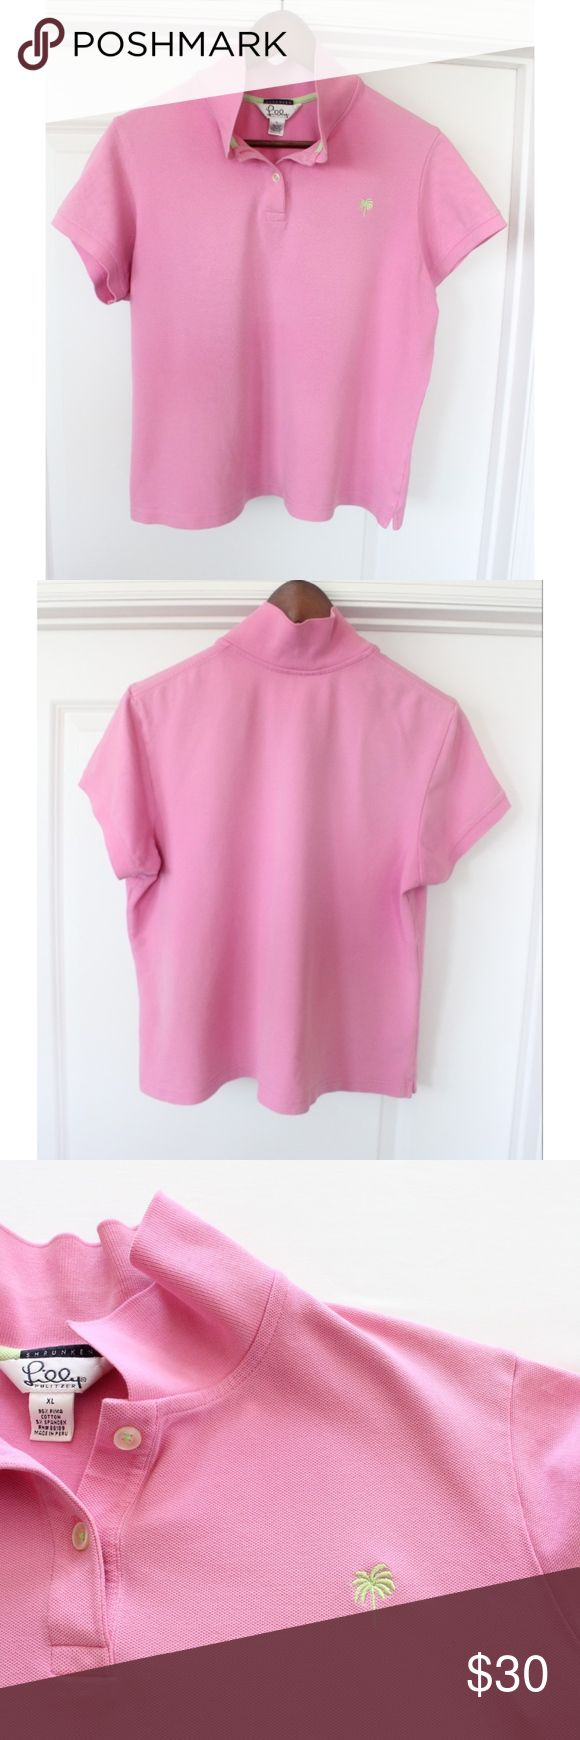 "Lilly Pulitzer Pink Polo Shirt Size XL Women's Shrunken style Machine washable 95% Cotton; 5% Spandex In very good condition! Gently worn. Pics show accuracy of condition No stains, snag or tears noted. From a pet & smoke free home!  *Buy 2+ items and save 10% on your order!*  Measurements (approx):  length 21.5"" pit-to-pit 21"" waist 42"" Lilly Pulitzer Tops"